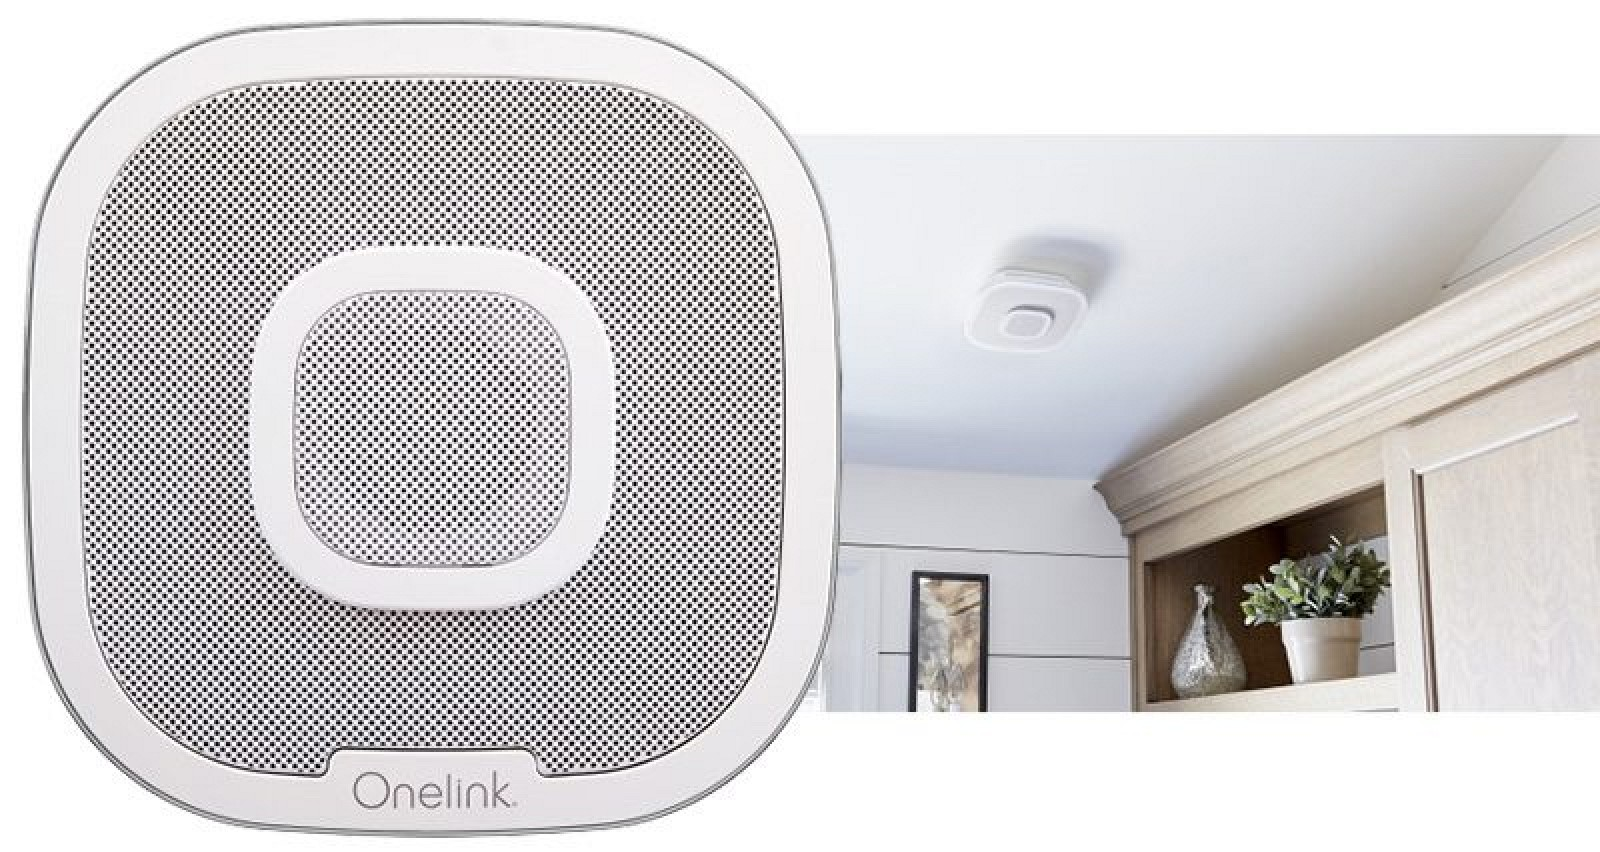 Voice Control for Onelink Safe & Sound